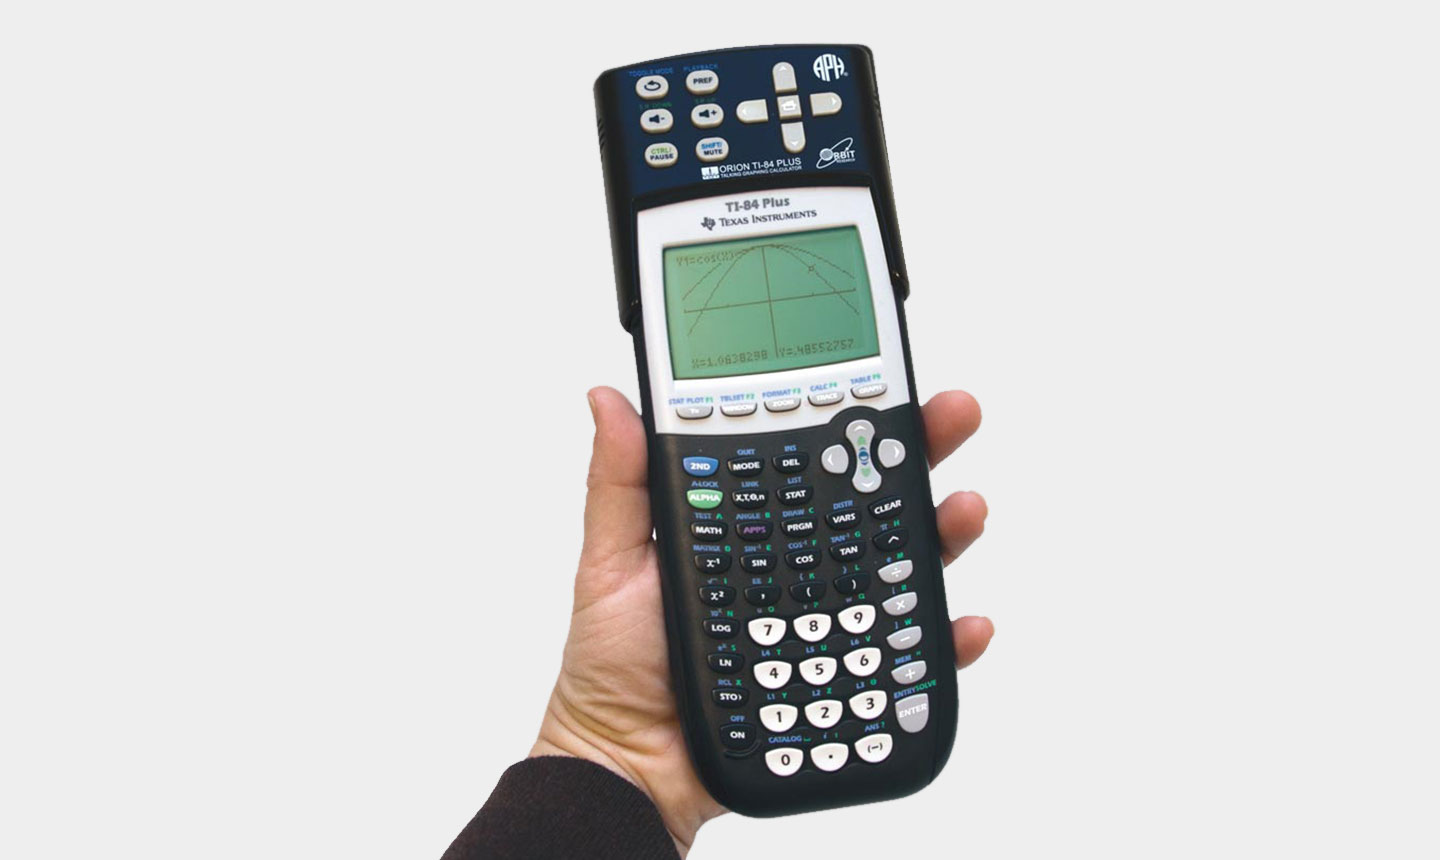 A hand holds up a graphing calculator displaying the front side with a small single-color screen and an extensive array of calculating buttons.